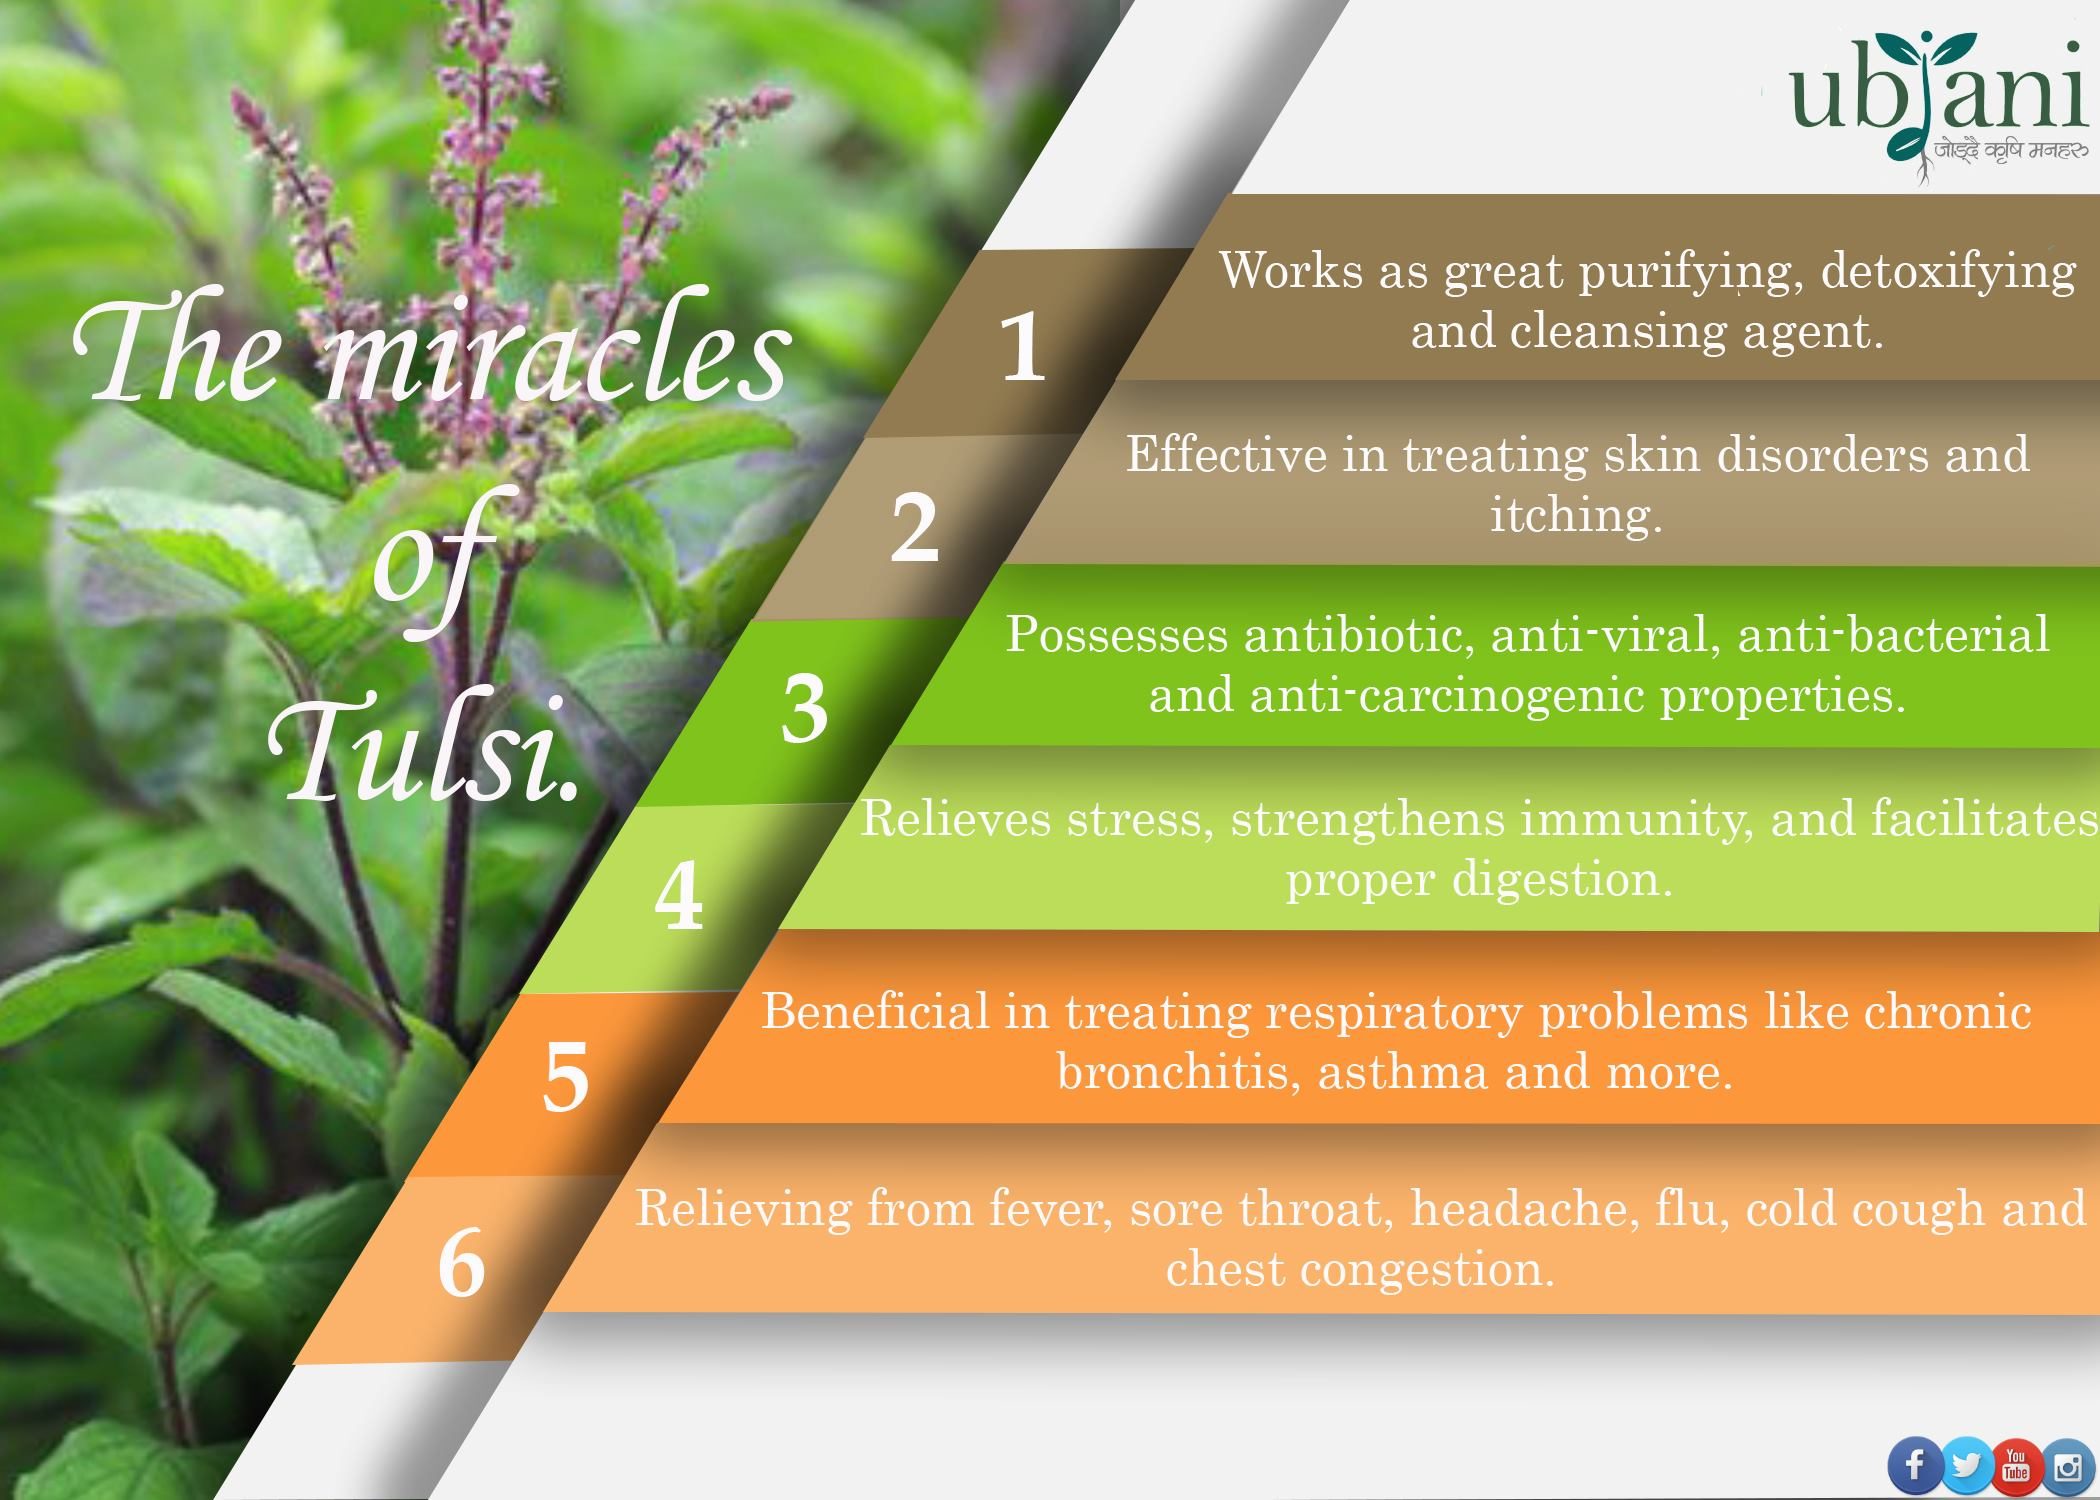 The Miracles of Tulsi